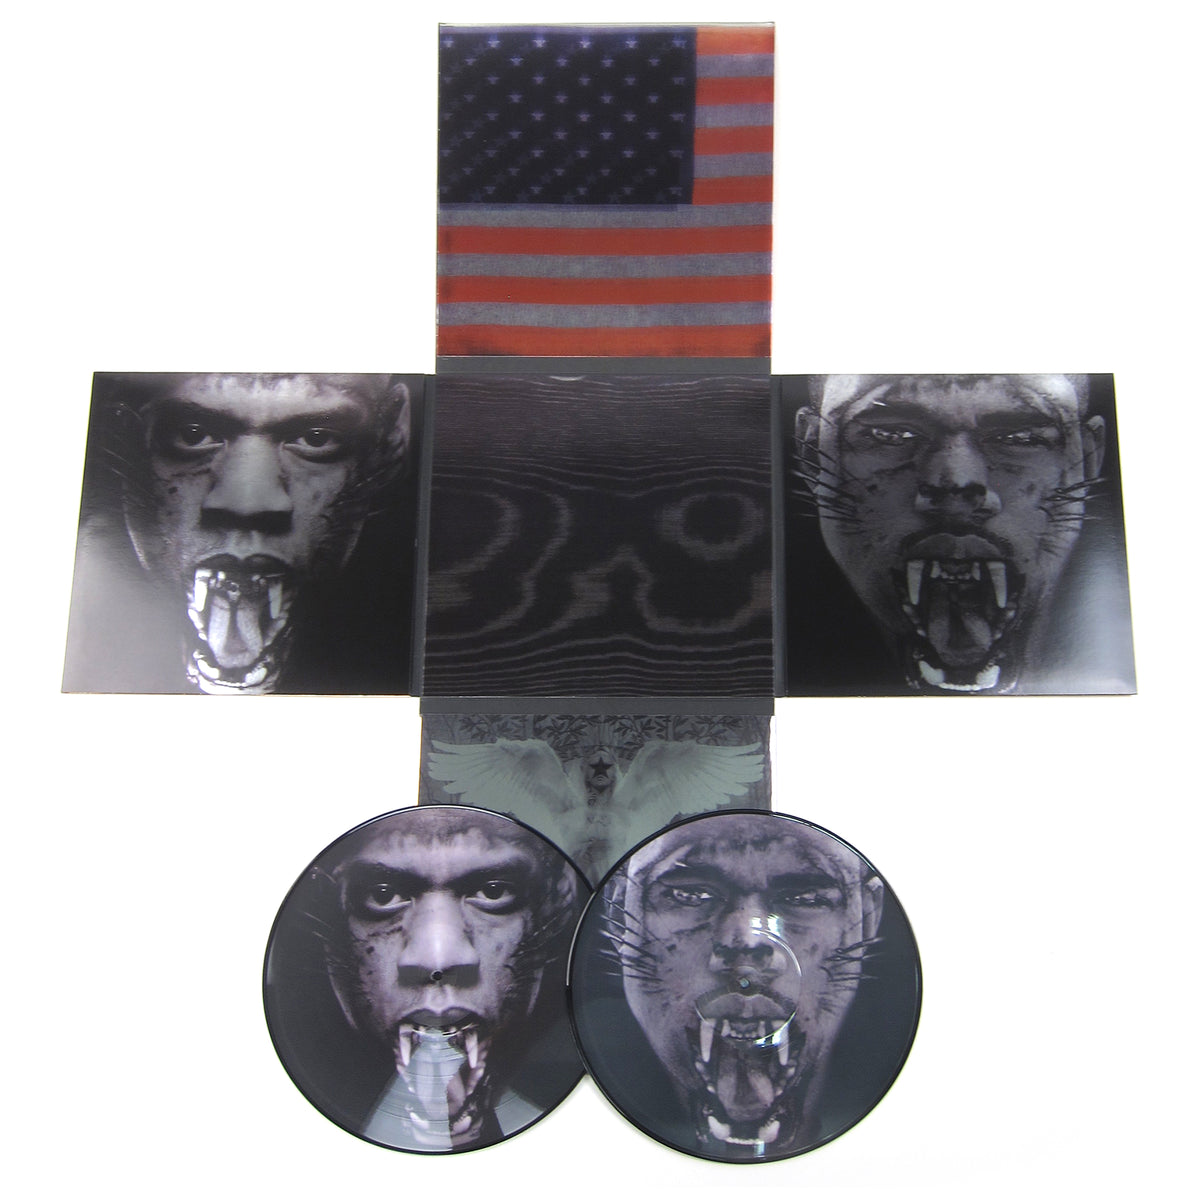 Kanye West & Jay-Z: Watch The Throne (Picture Disc) Vinyl 2LP